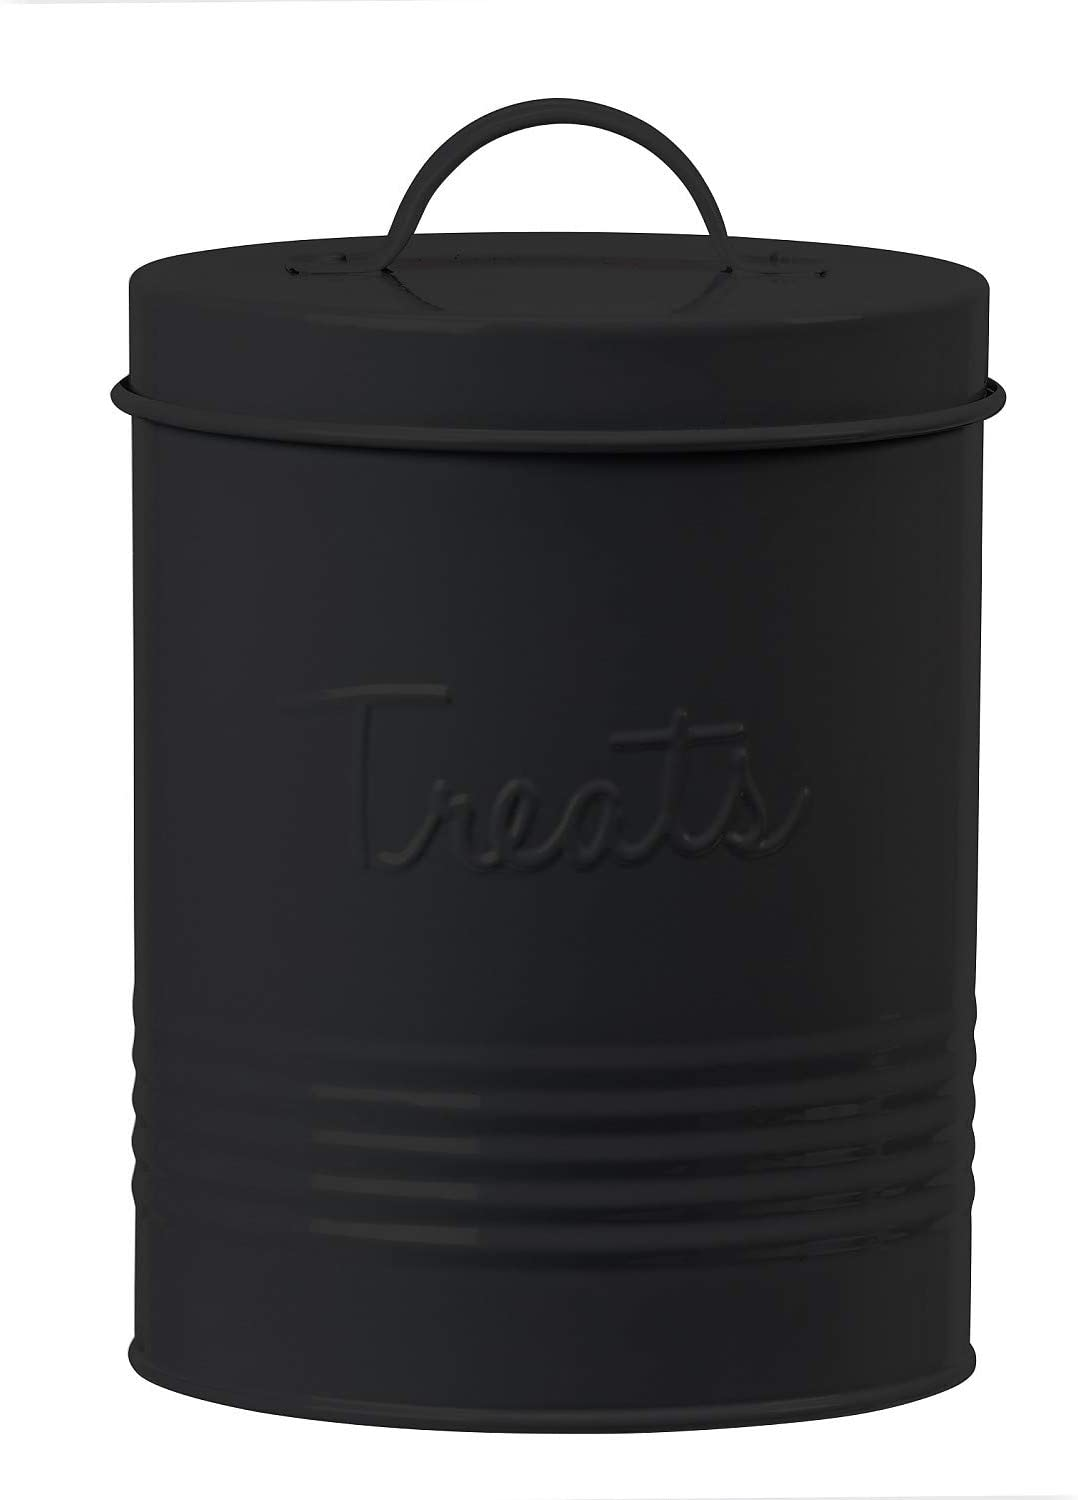 Amici Pet Retro Metal Storage Canister Treats Jar, 72 Fluid Ounces, Matte Black